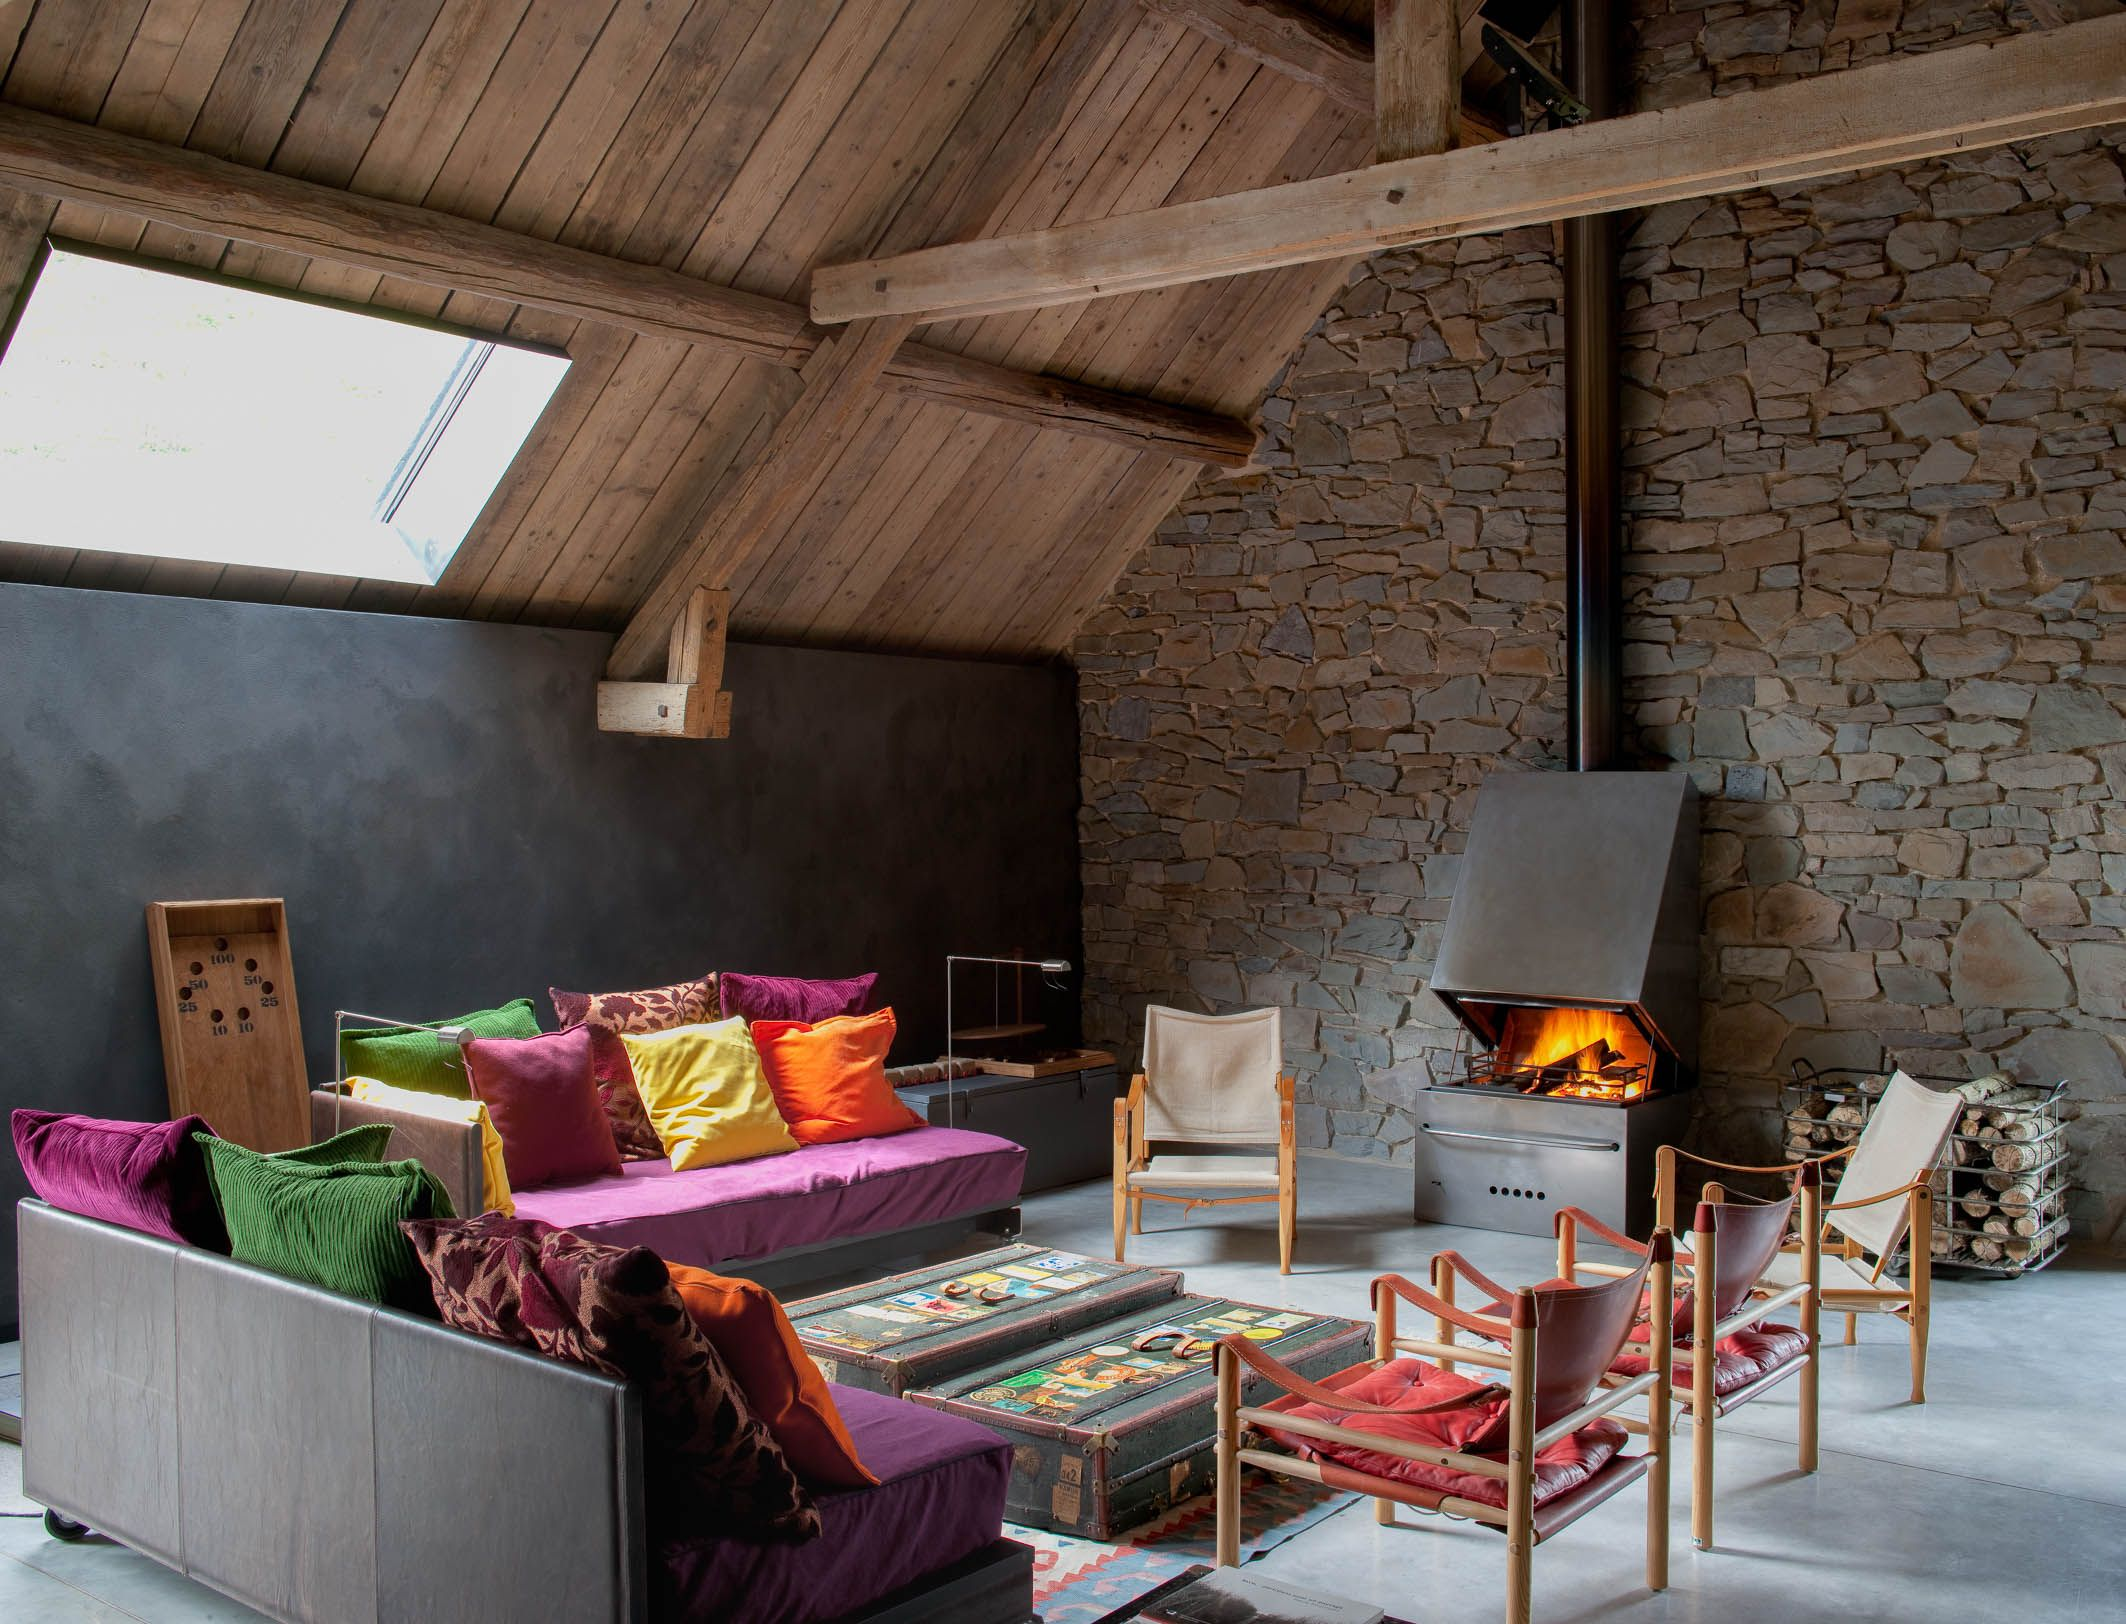 Design Gites in the Belgian countryside